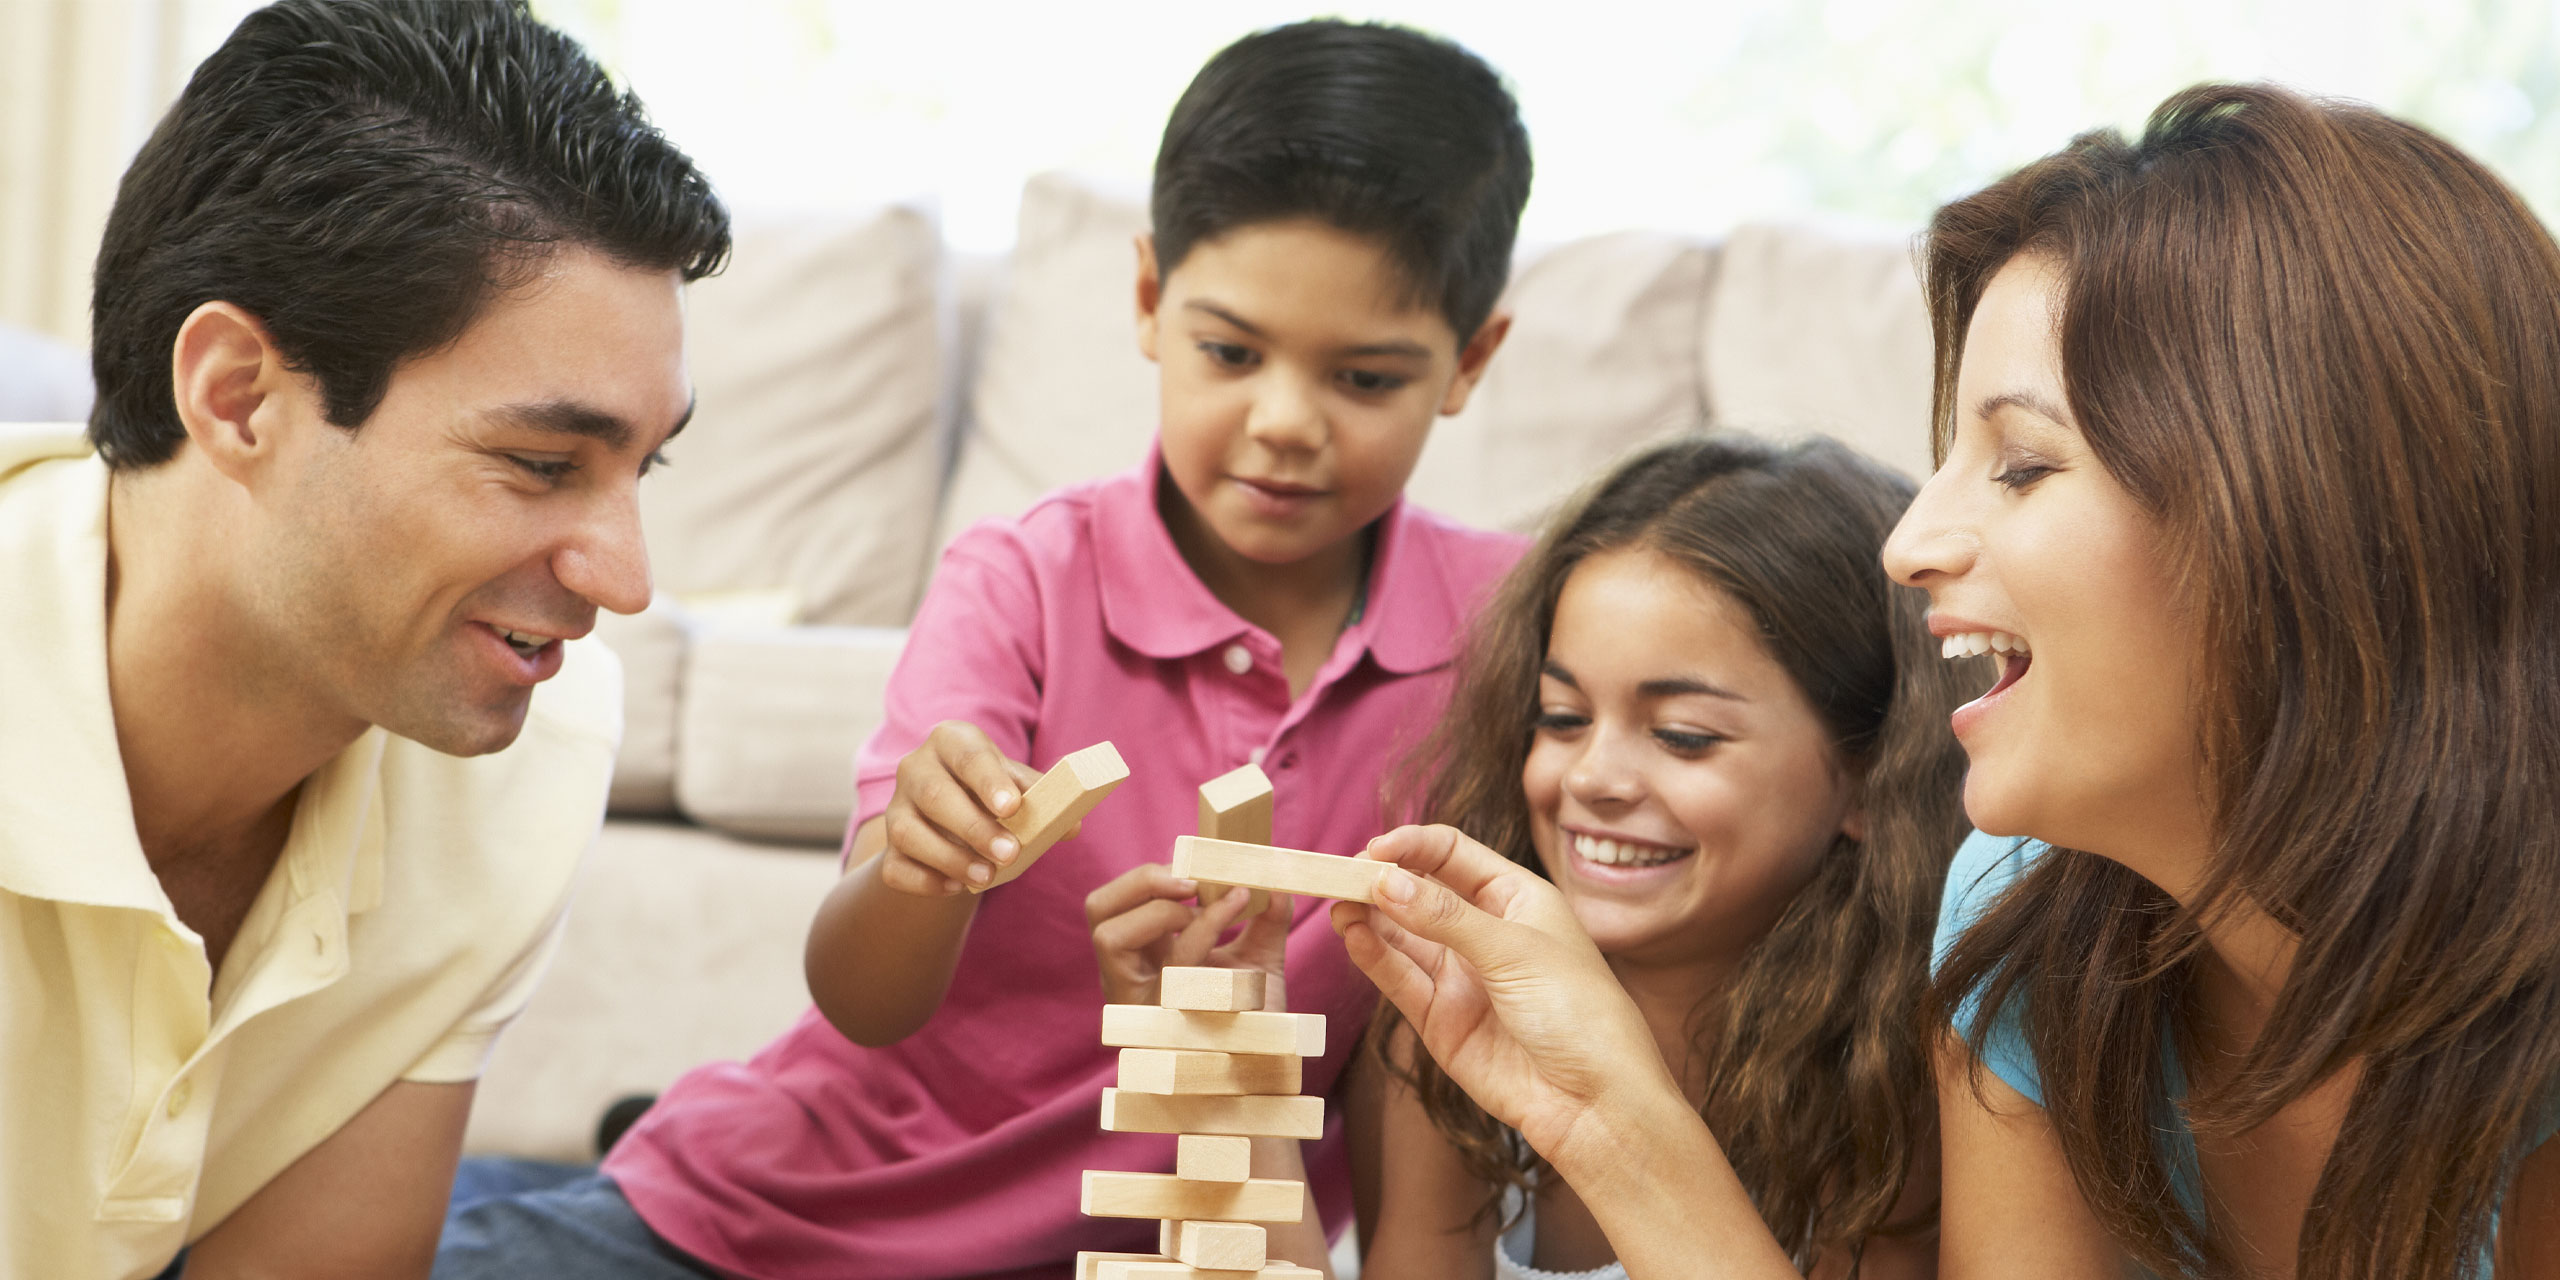 8 Best New Family Games to Play on Vacation in 2019   Family Vacation Critic